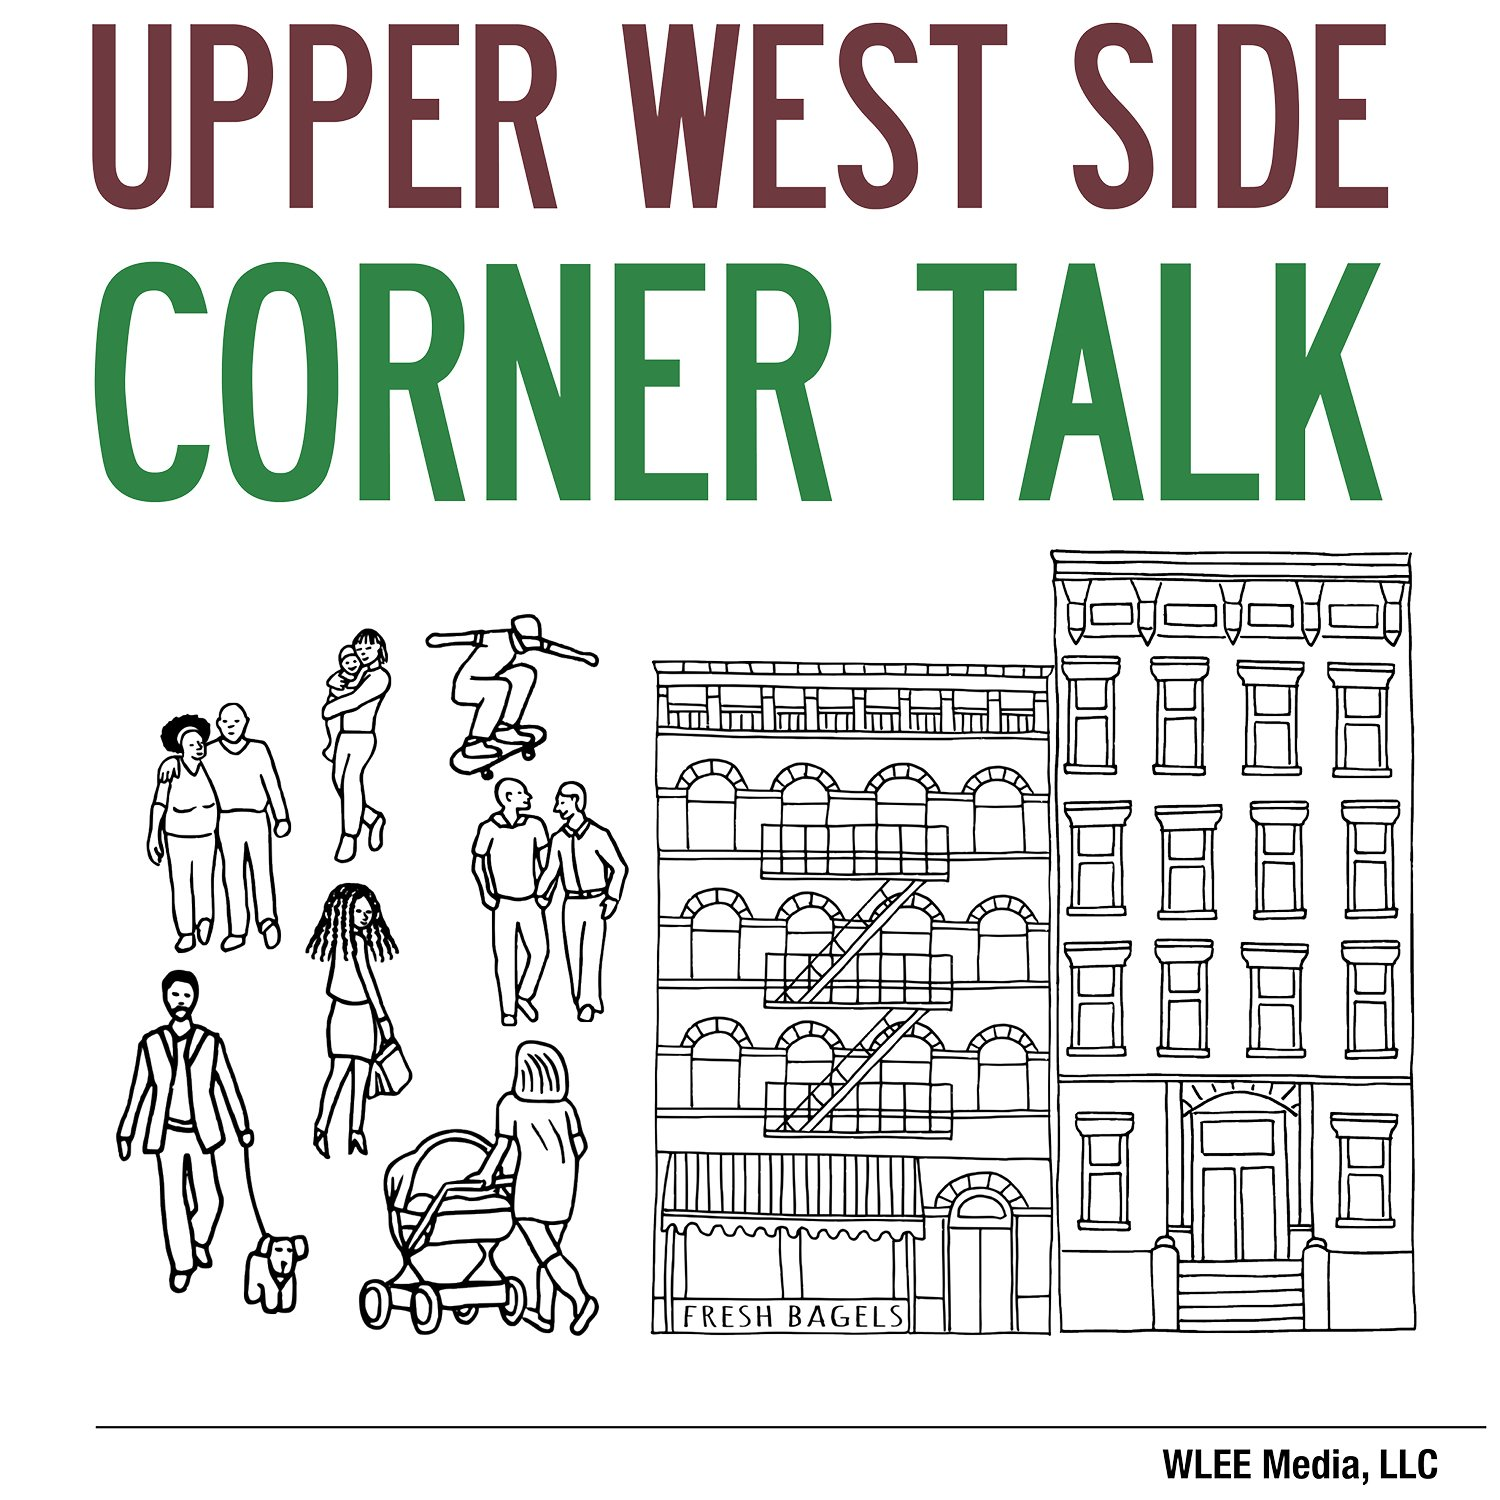 Upper West Side Corner Talk